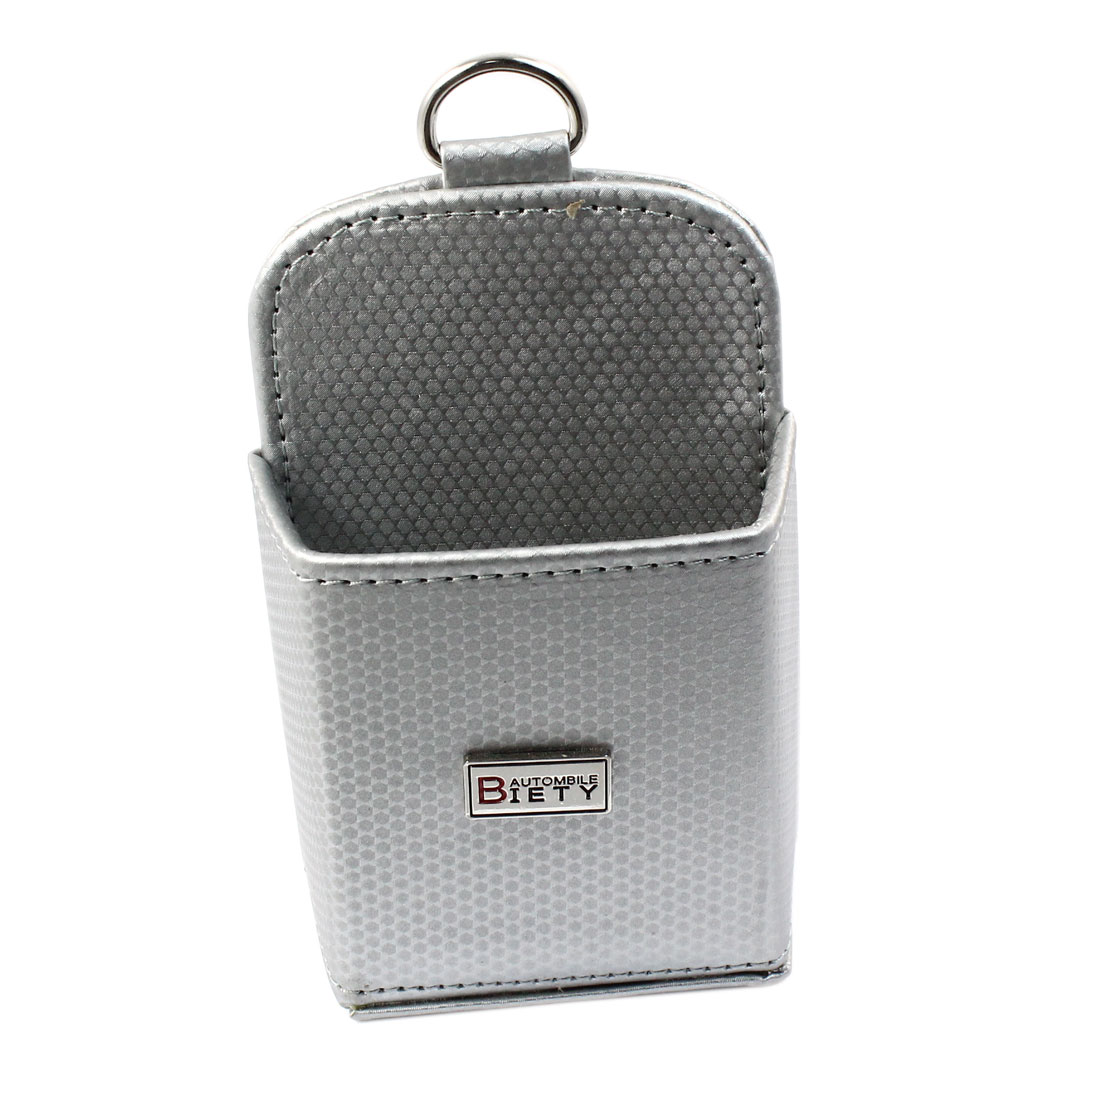 Vehicle Silver Tone Carbon Fiber Pattern Phone Pouch Holder Bag w Air Vent Hook